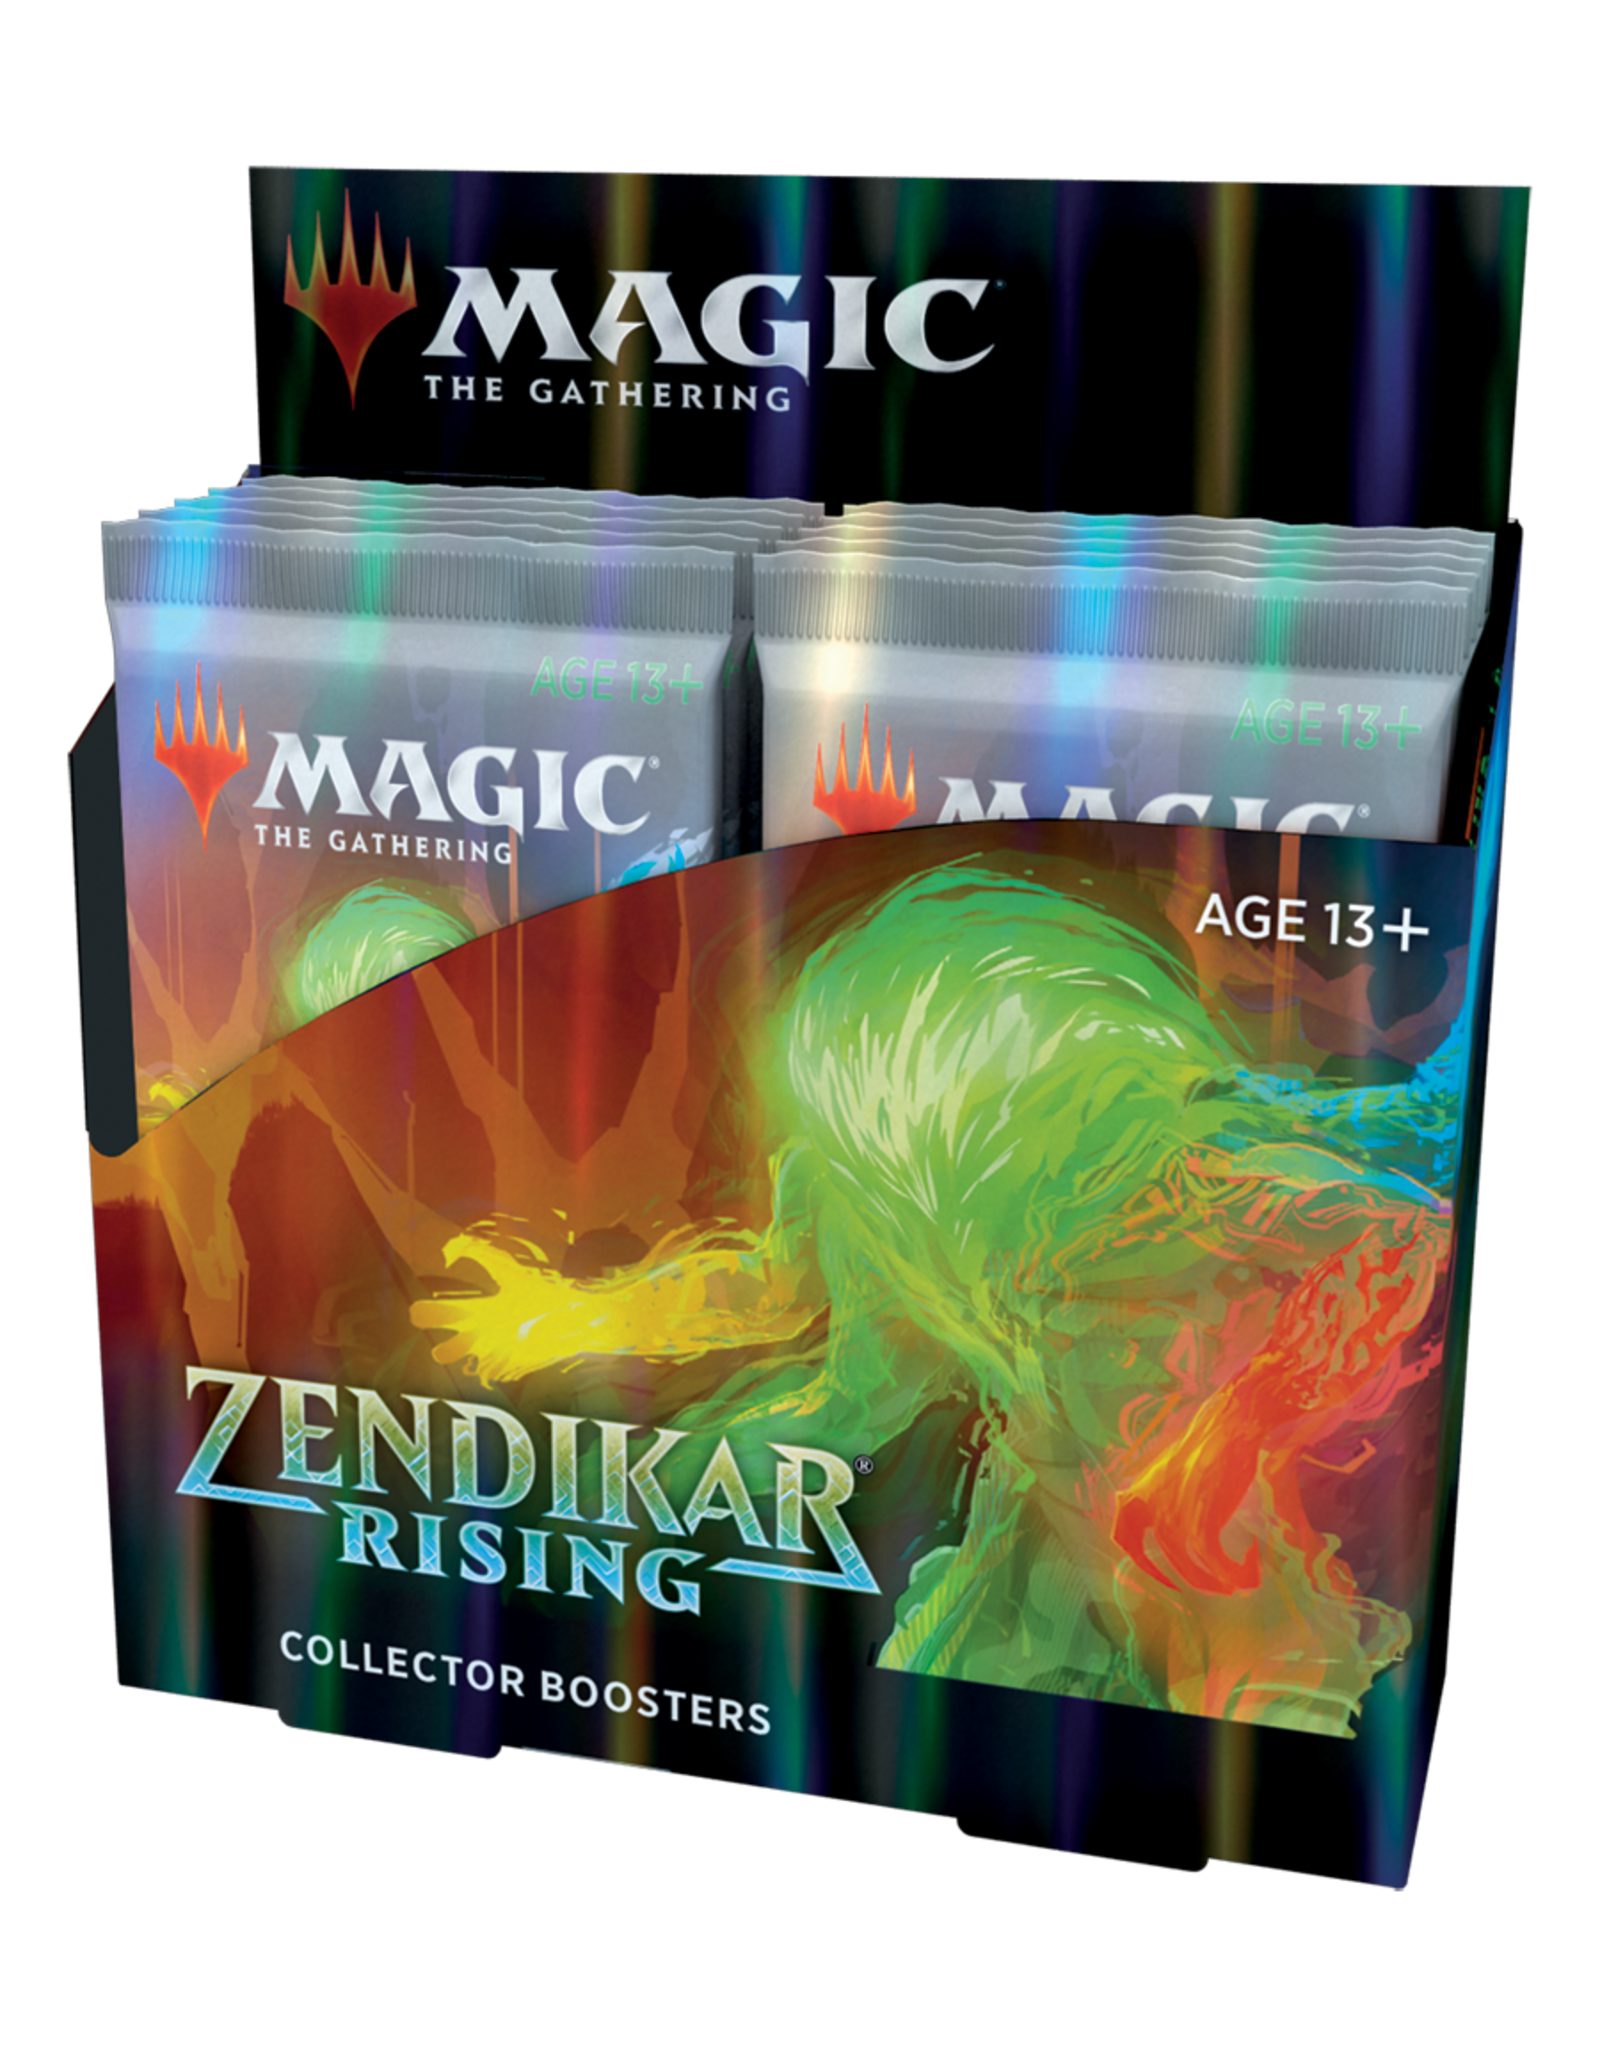 Magic: The Gathering Magic: The Gathering - Zendikar Rising Collector Booster Box